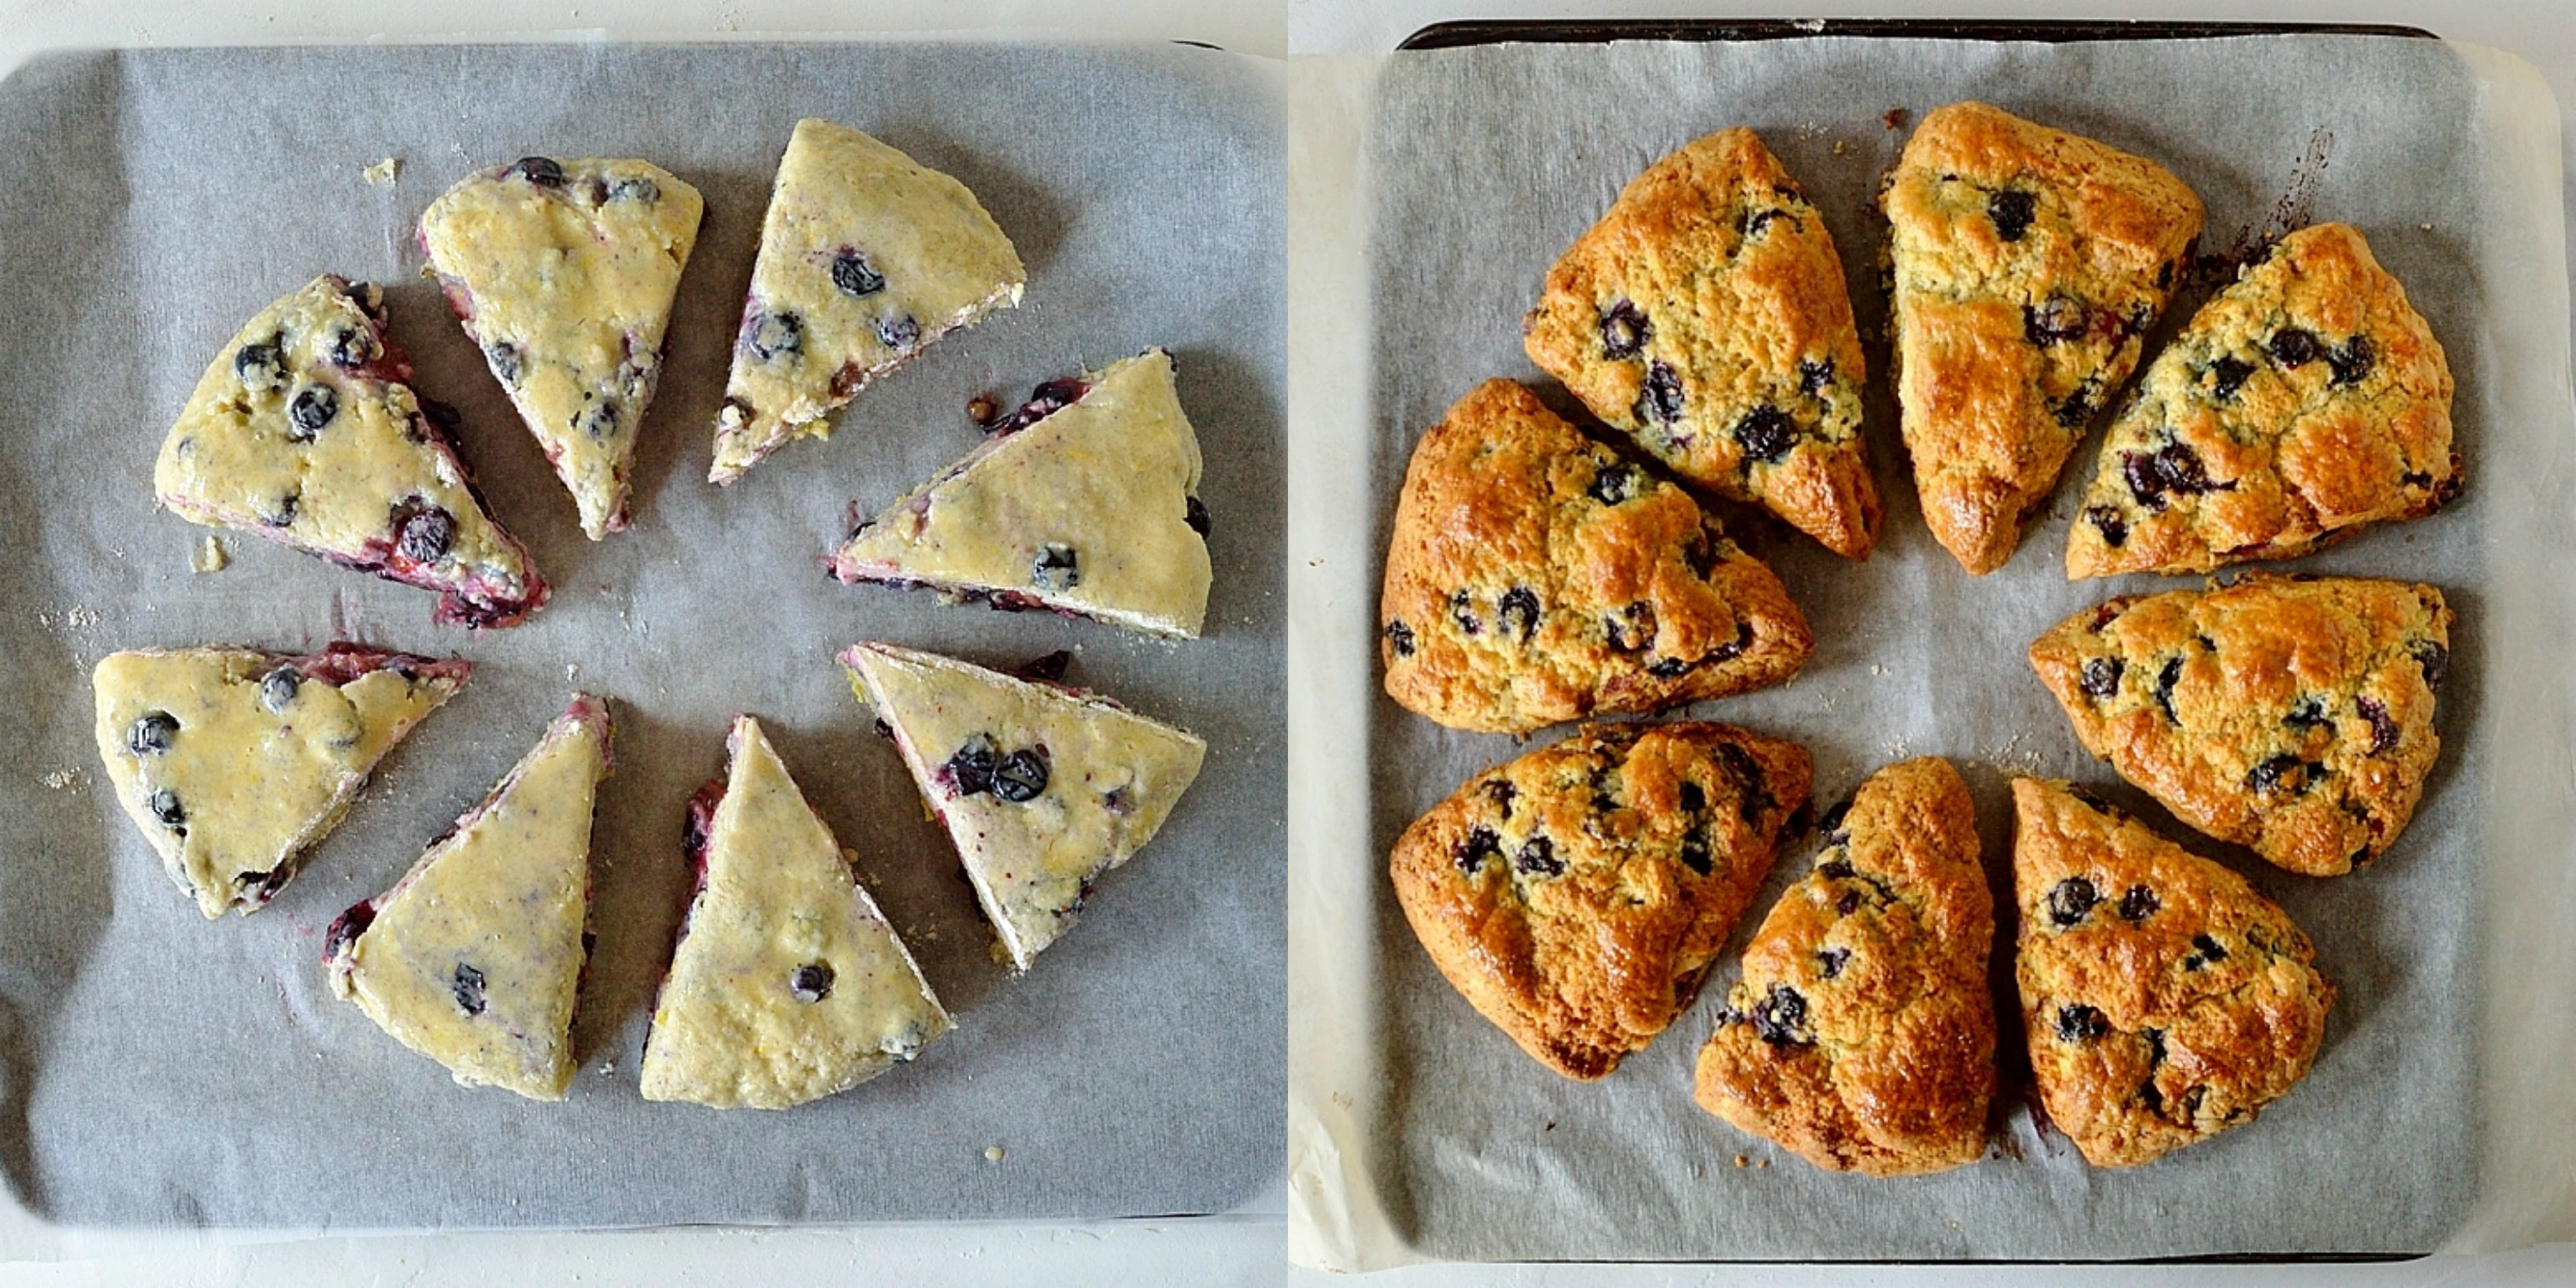 Lemon blueberry cardamom scones step 4